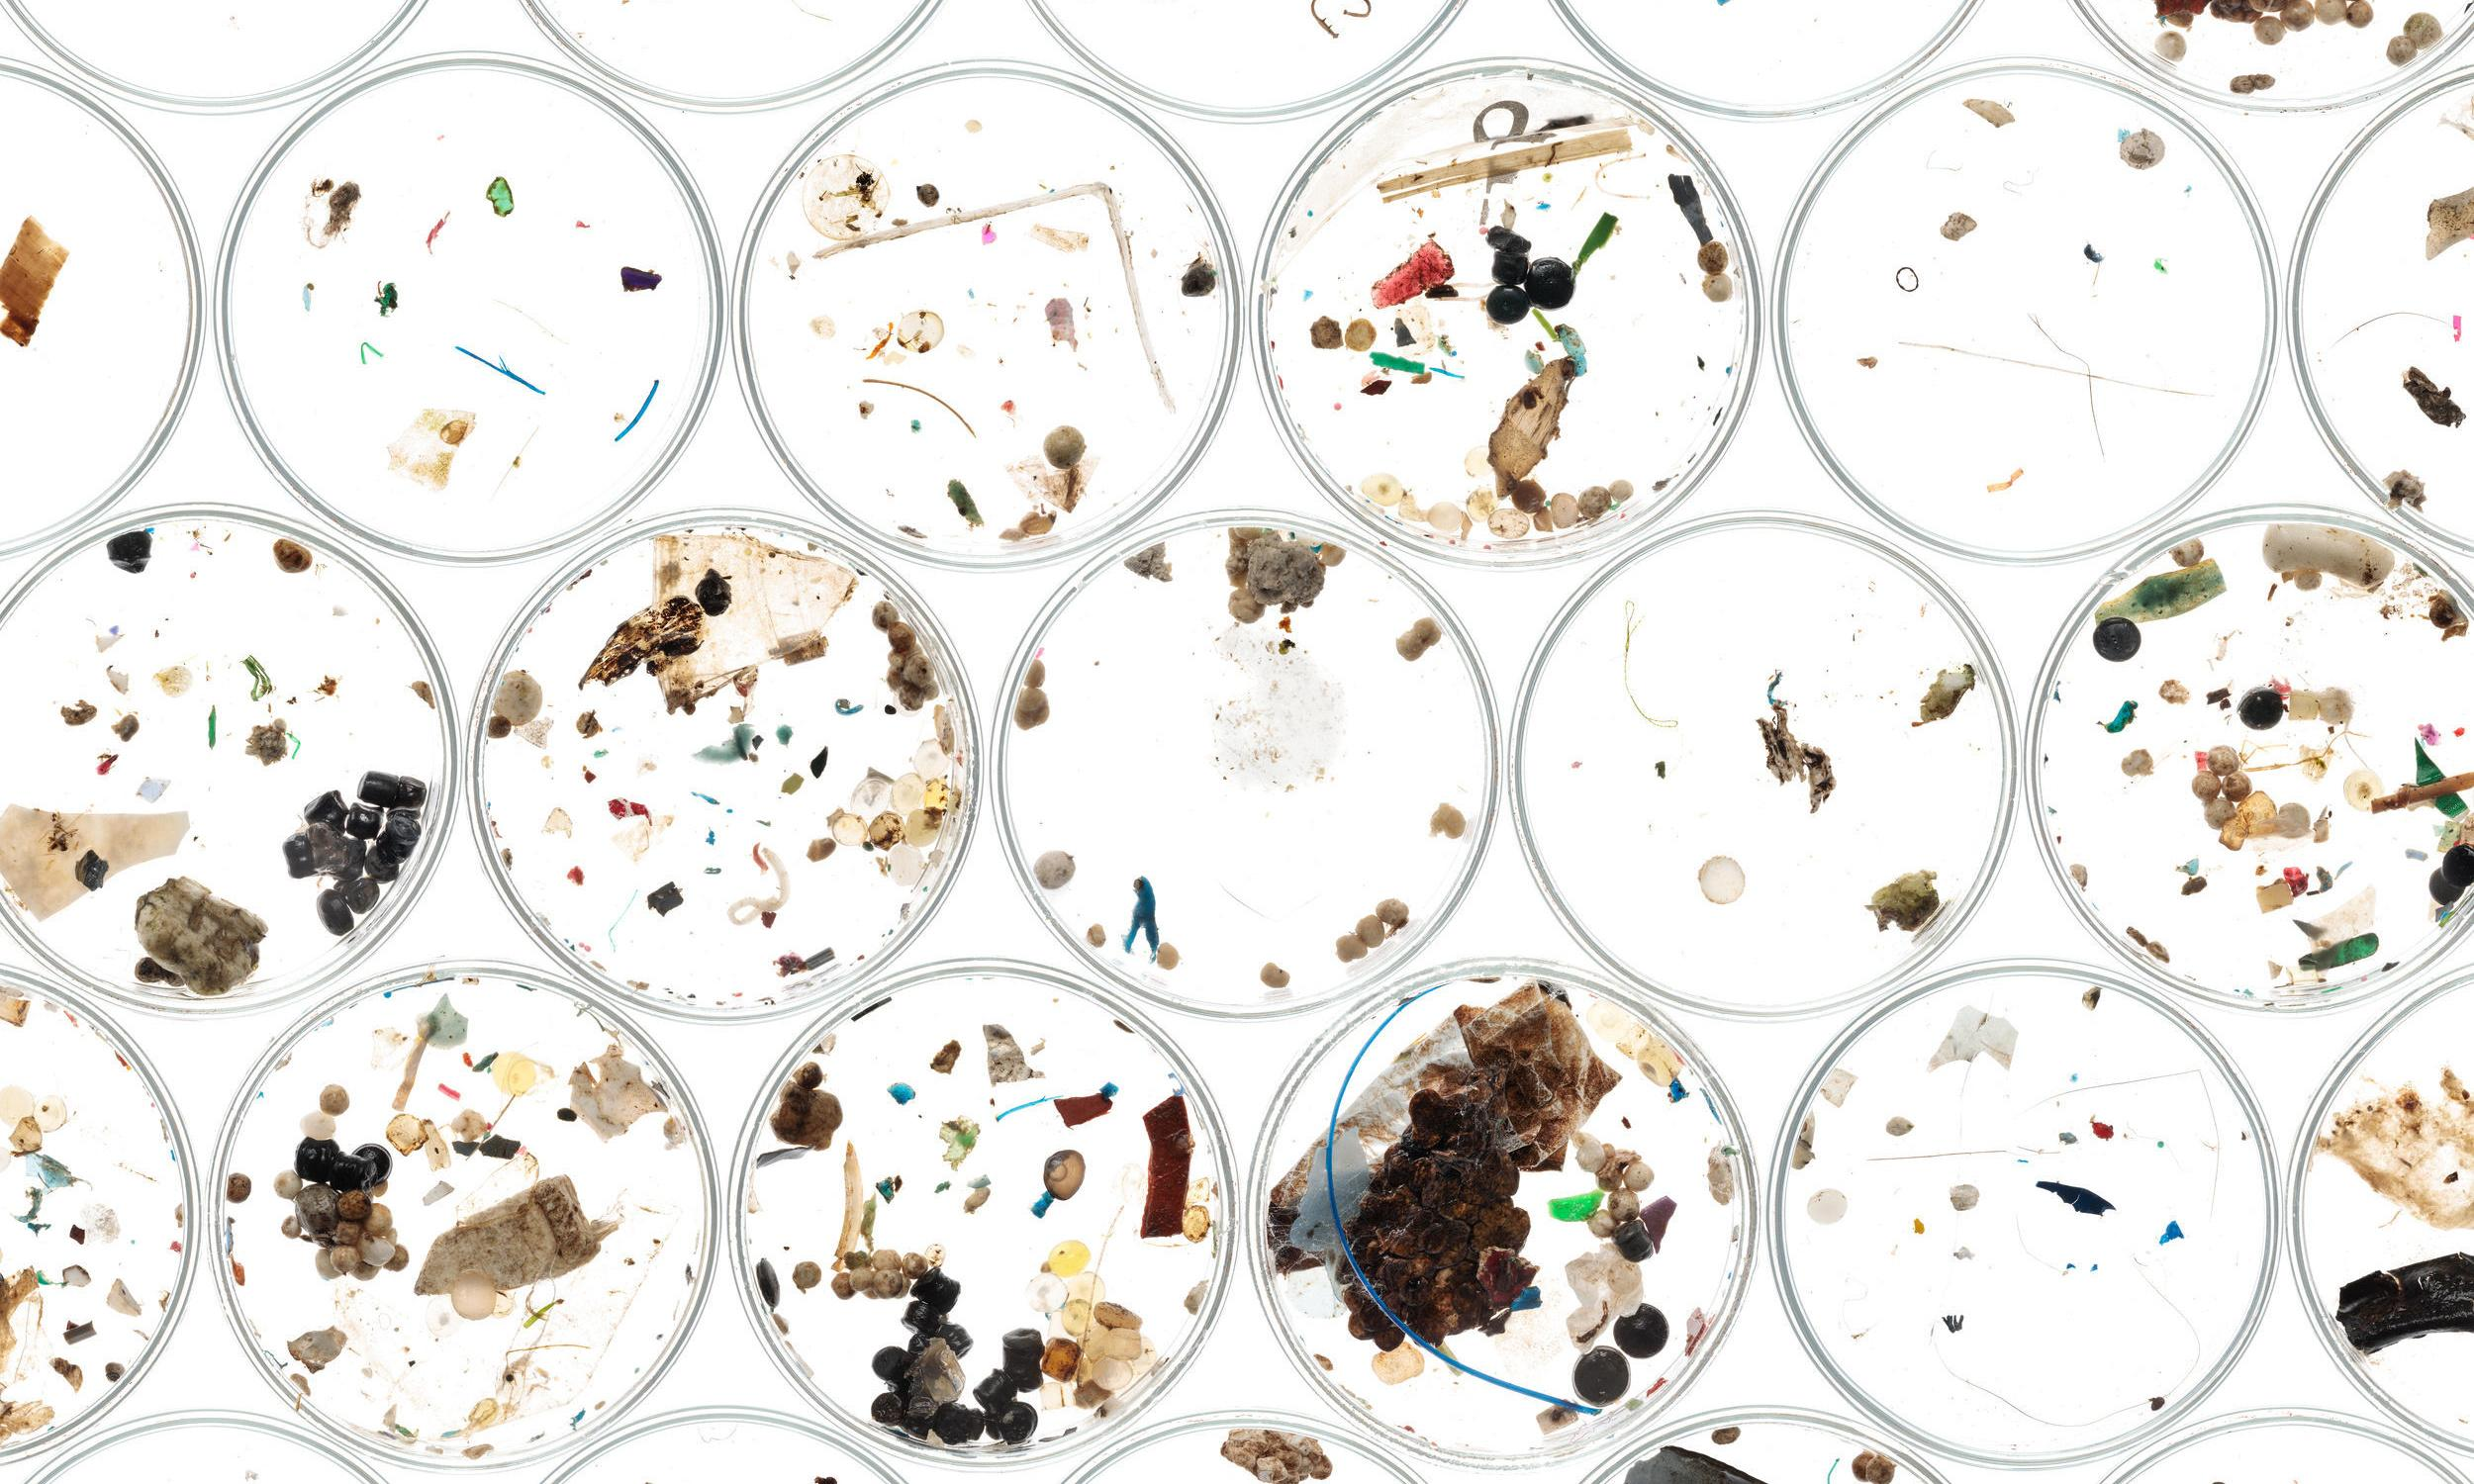 How worried should we be about microplastics?